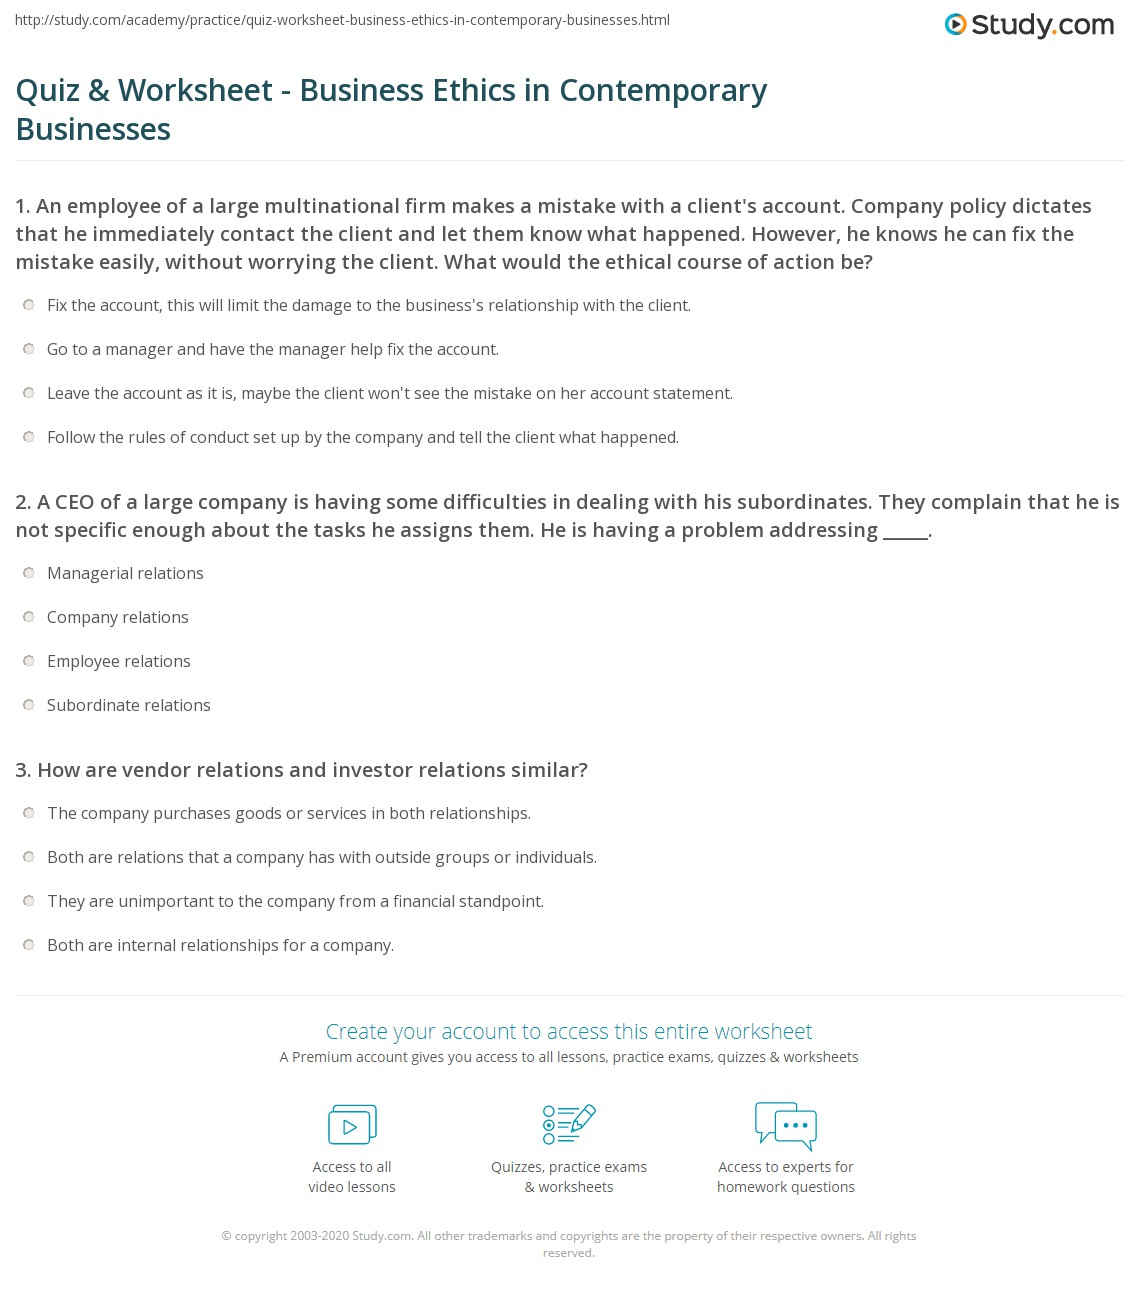 quiz worksheet business ethics in contemporary businesses 1 a ceo of a large company is having some difficulties in dealing his subordinates they have complained to him that he is not specific enough about